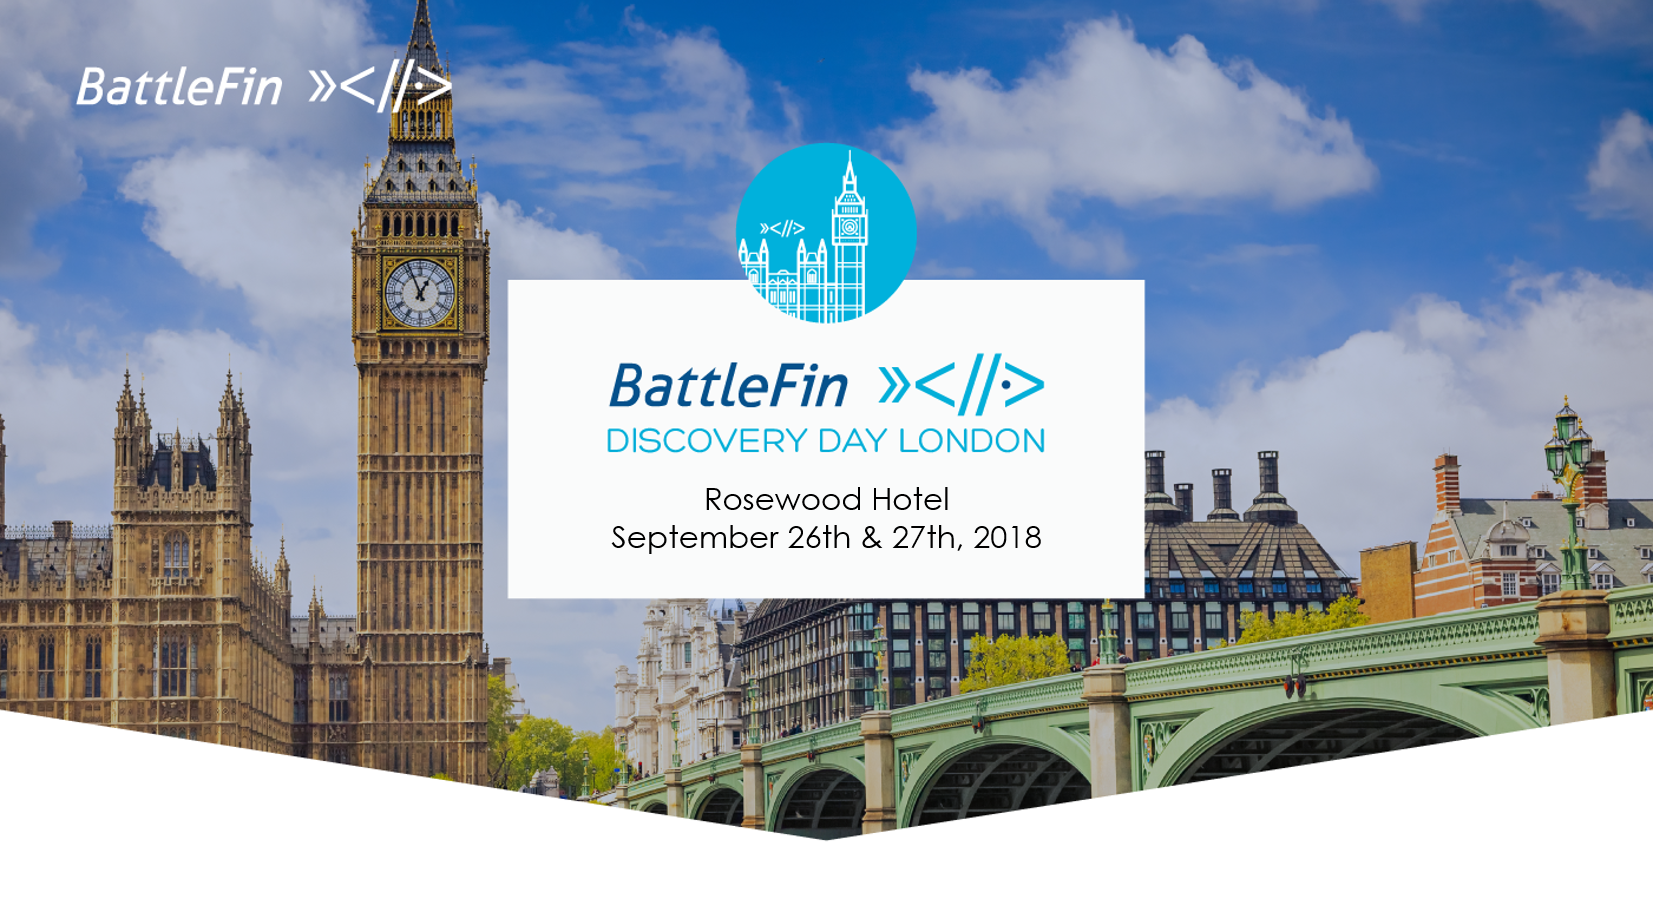 battlefin-london-2018-header